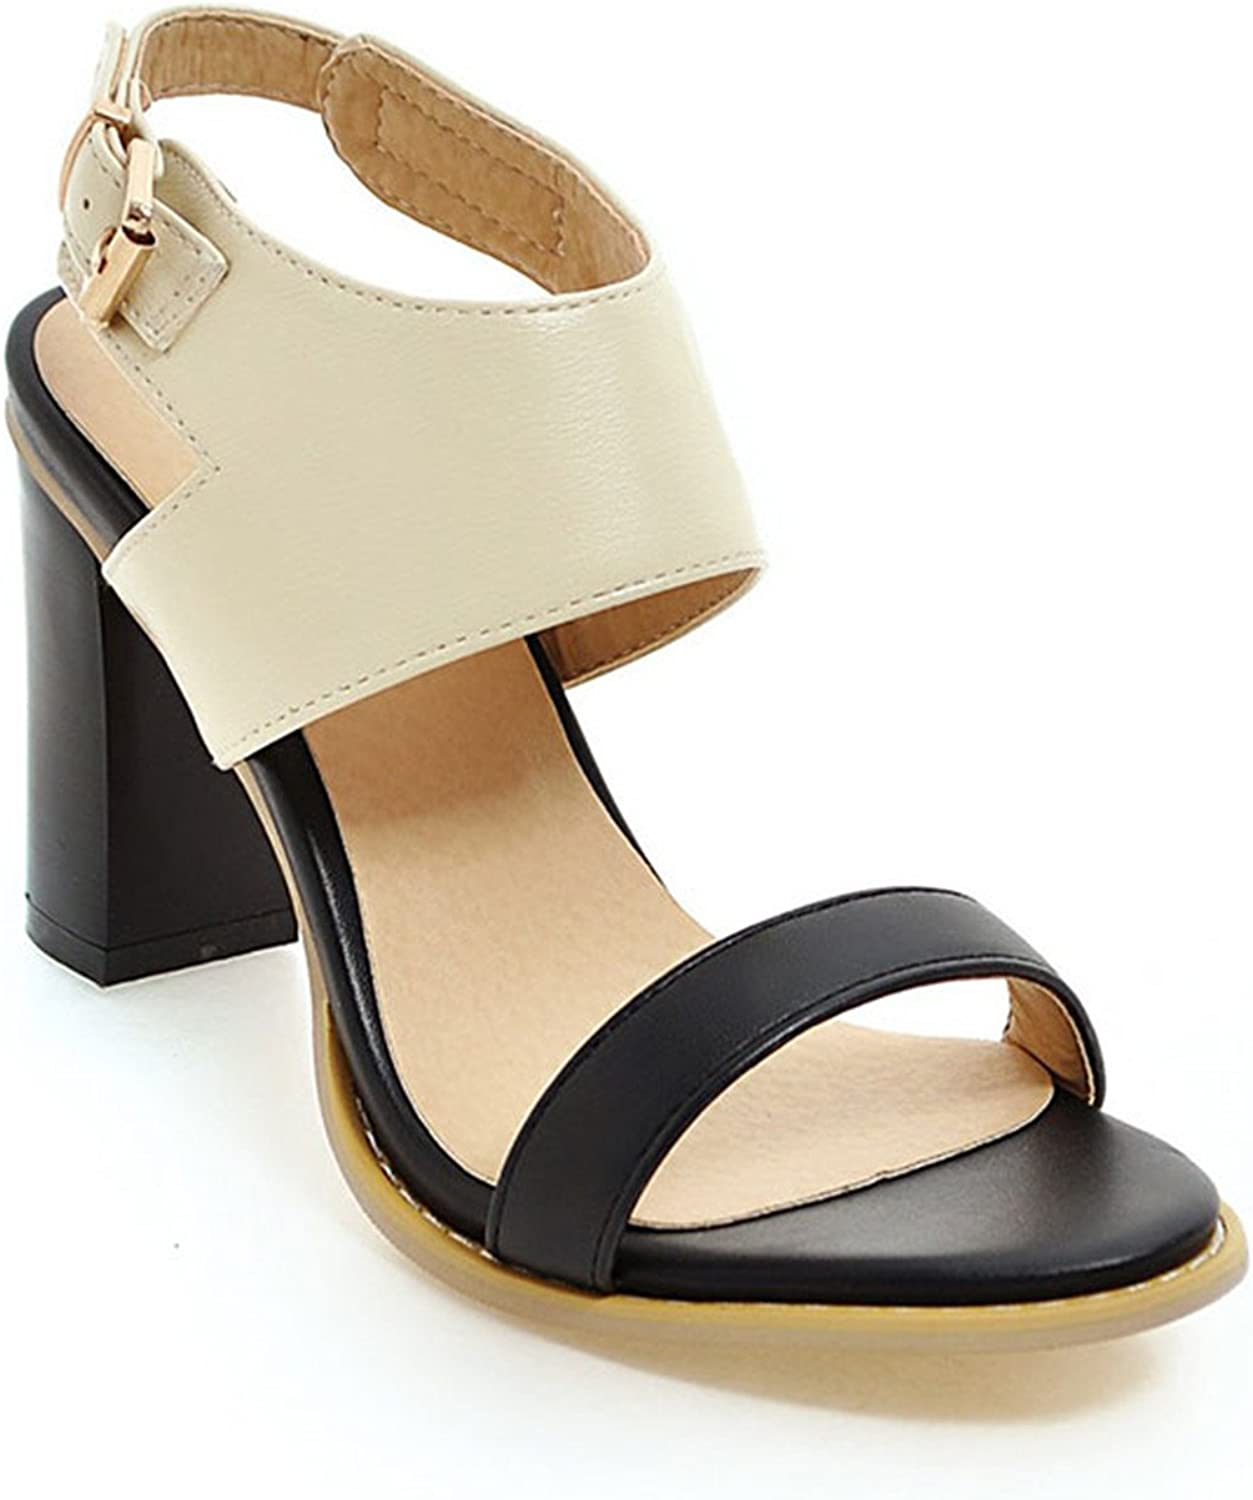 Karl Conner Women Sandals Super High Heels Mixed colors Ankle Strap Thick Heels